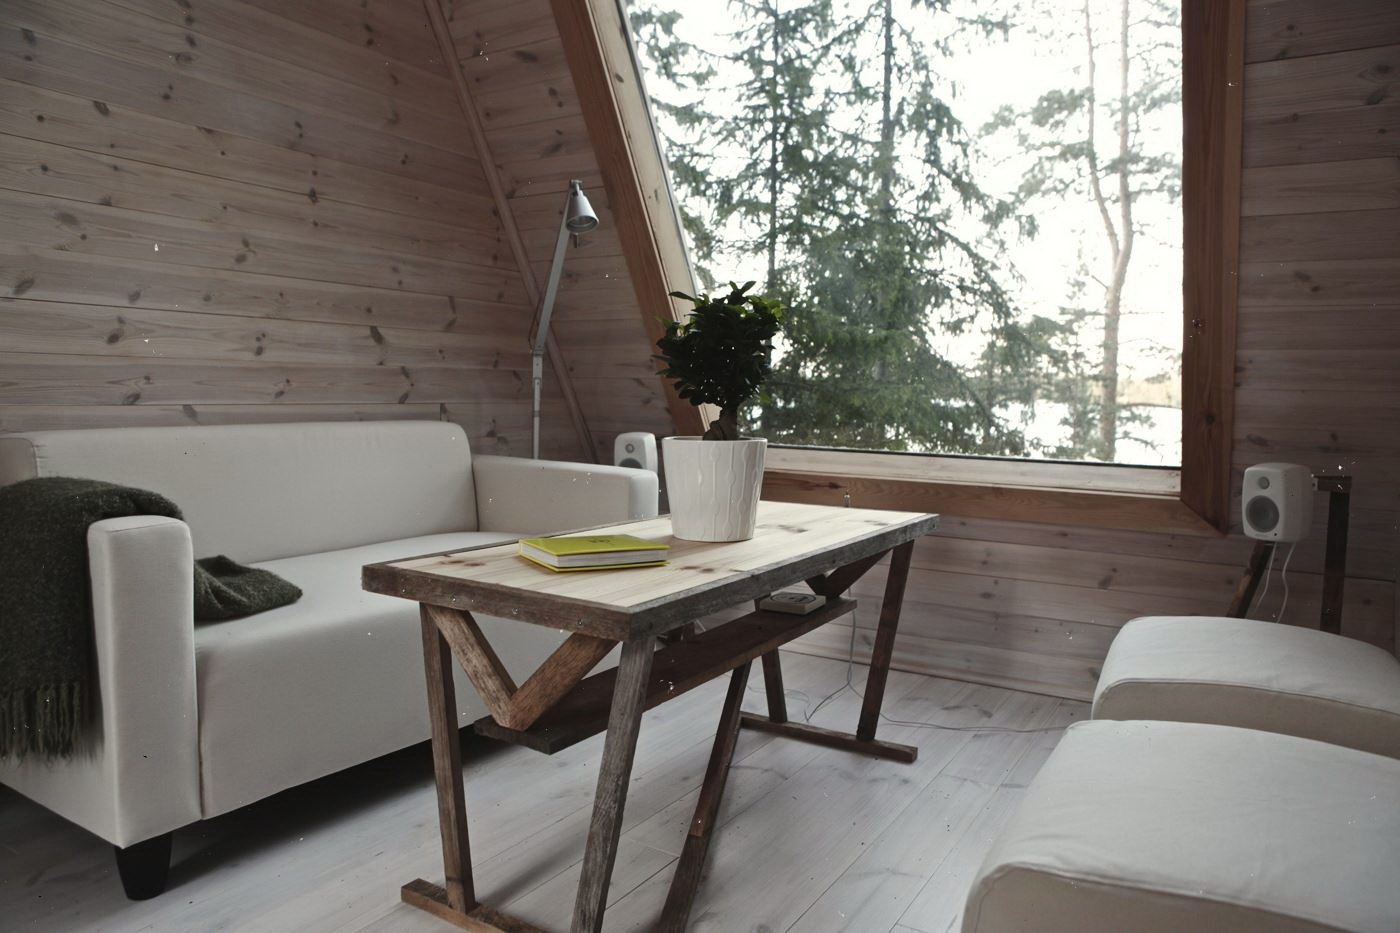 Nido | Tiny Cabin in the Finnish Woods by Robin Falck